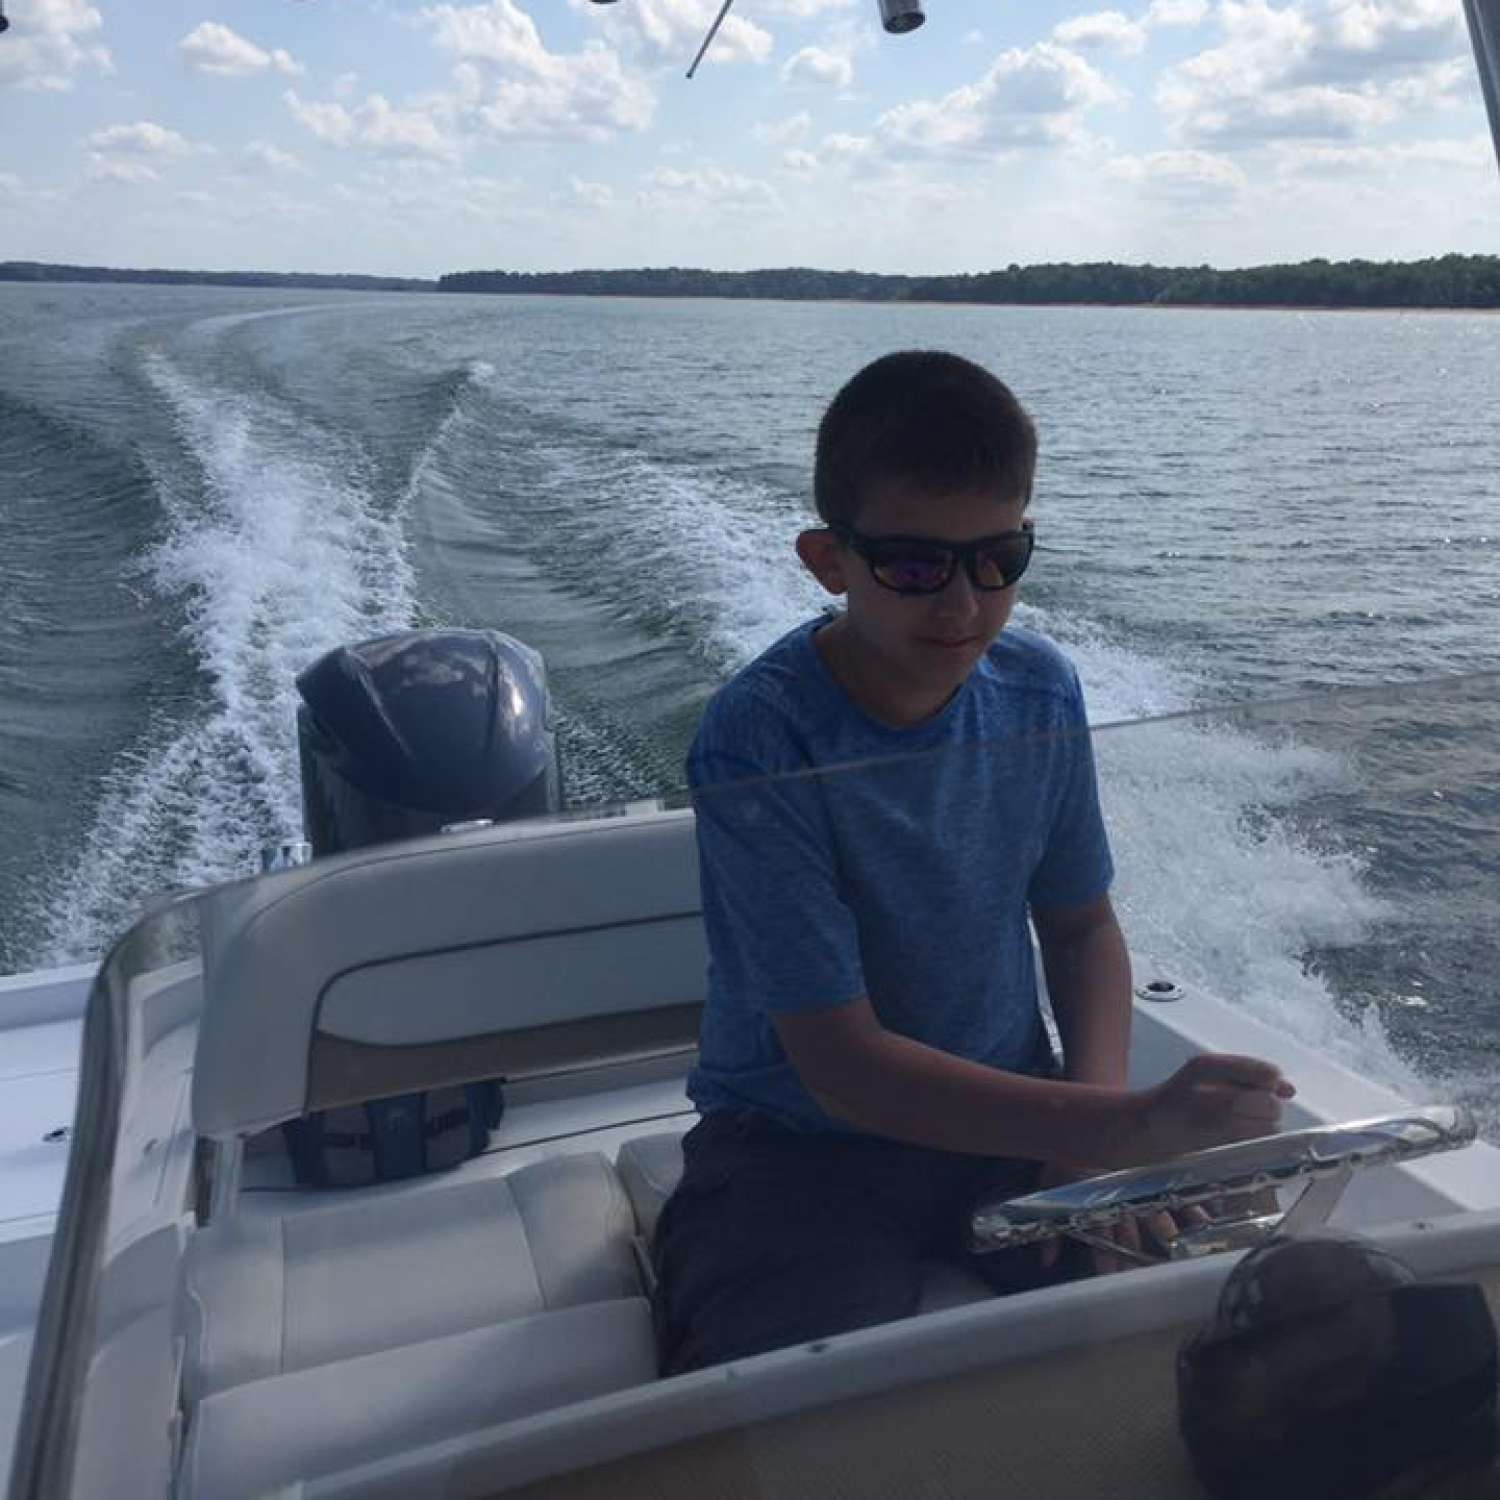 Title: Young Captain - On board their Sportsman Masters 247 Bay Boat - Location: Greenville, South Carolina. Participating in the Photo Contest #SportsmanJune2017